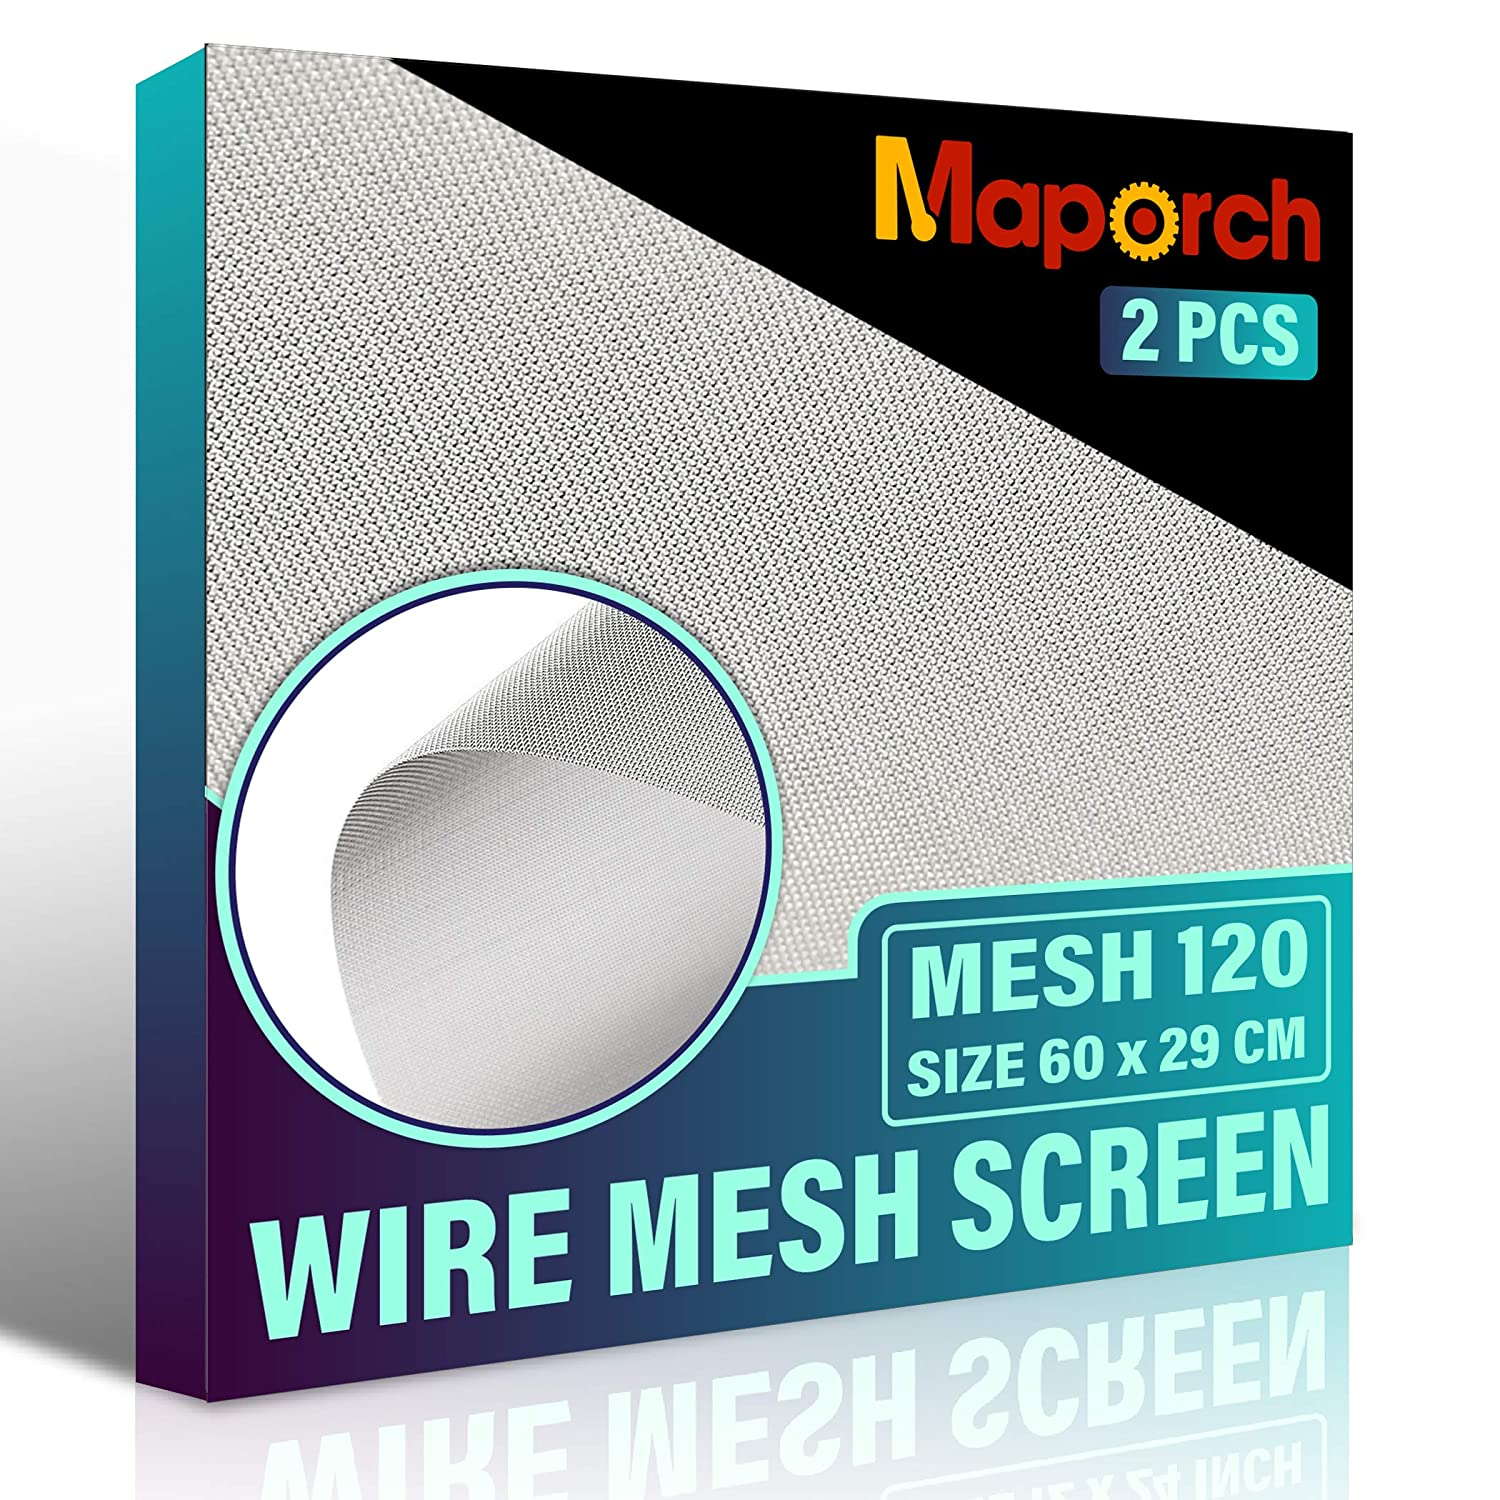 San Jose Mall MAPORCH 2 Pack 304 Stainless Steel Type Mesh Screen Wir Max 59% OFF 120